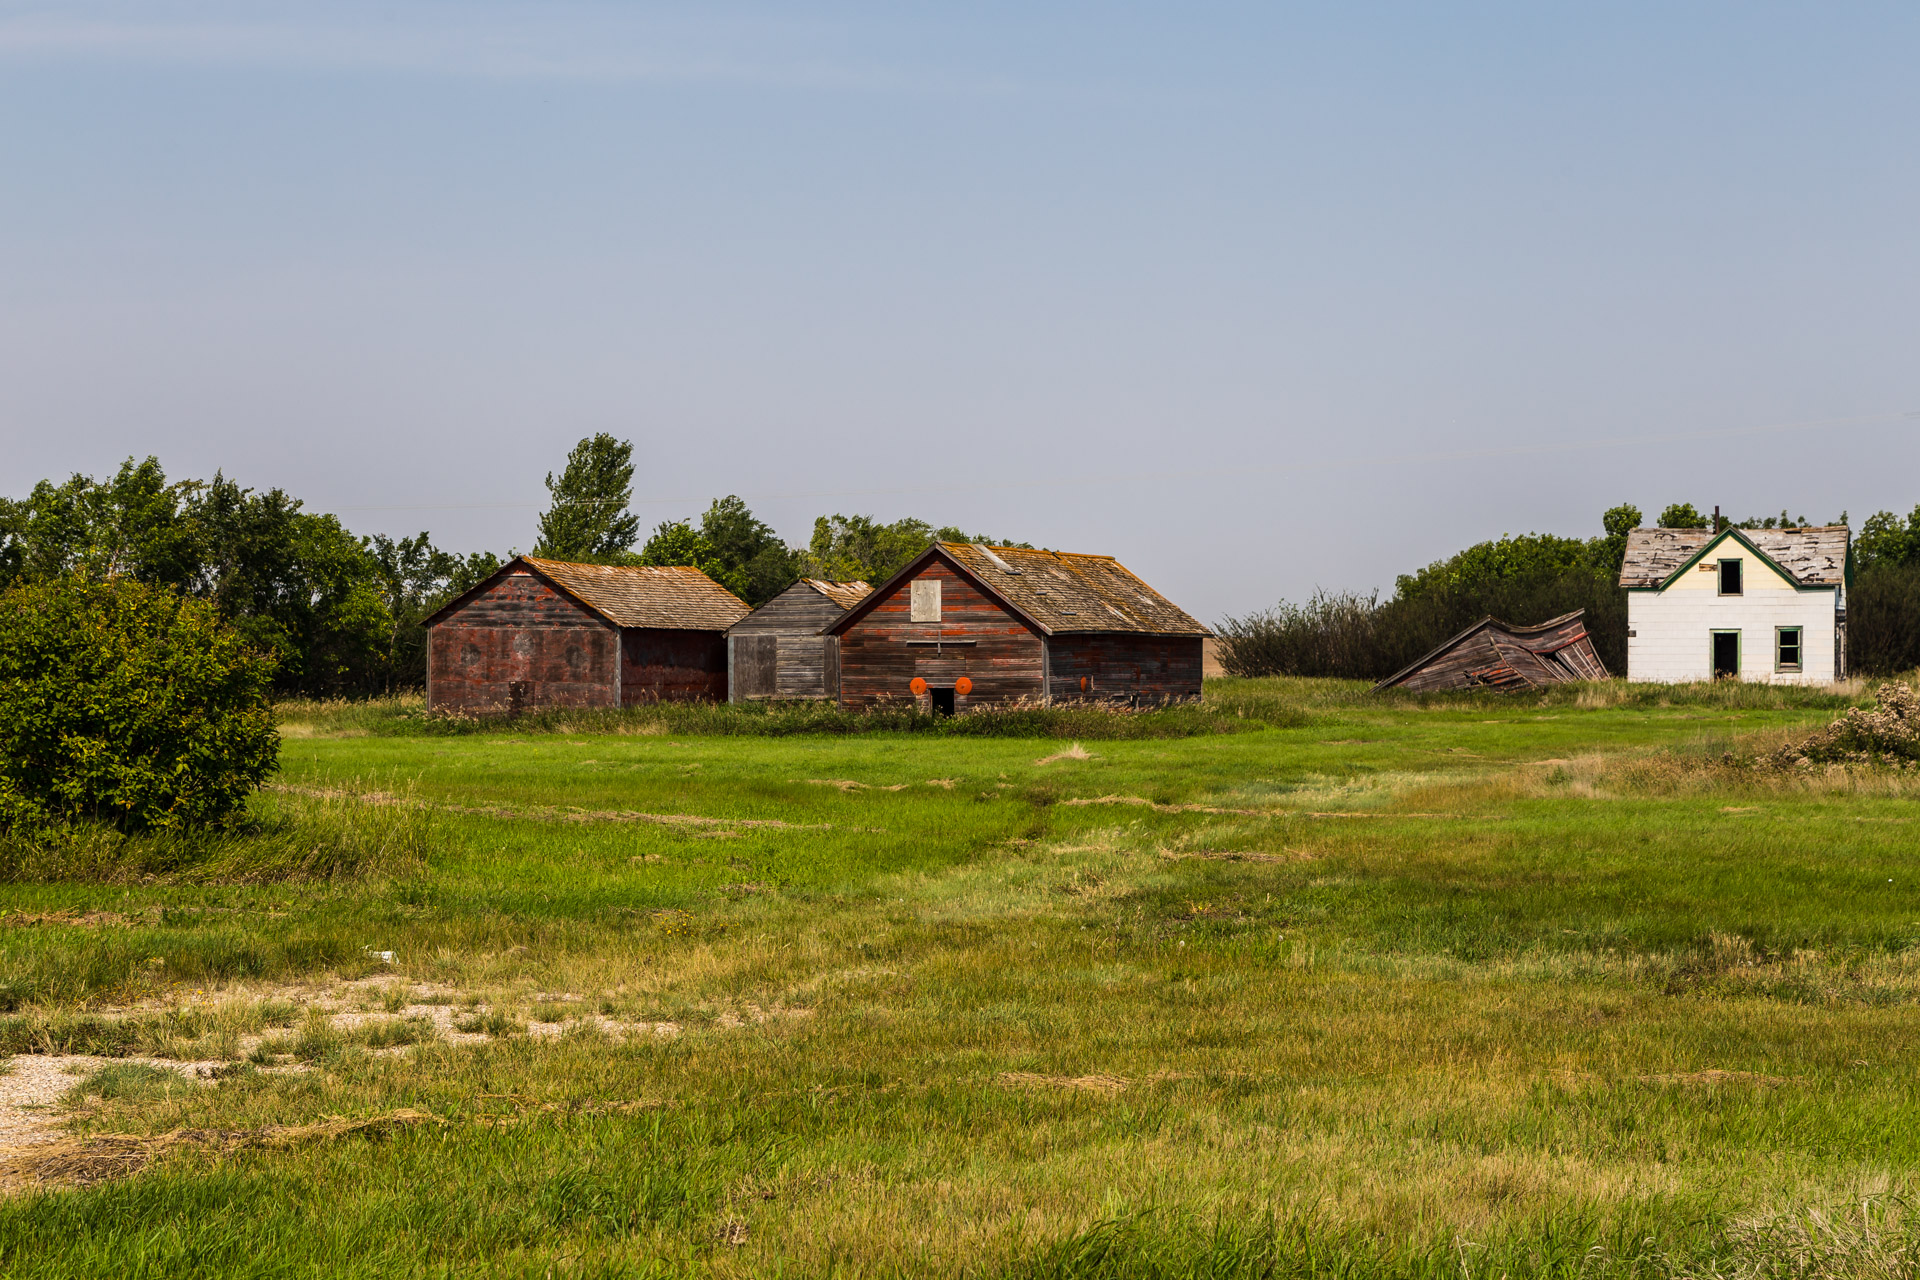 A Collection Of Barns (right angle mid)